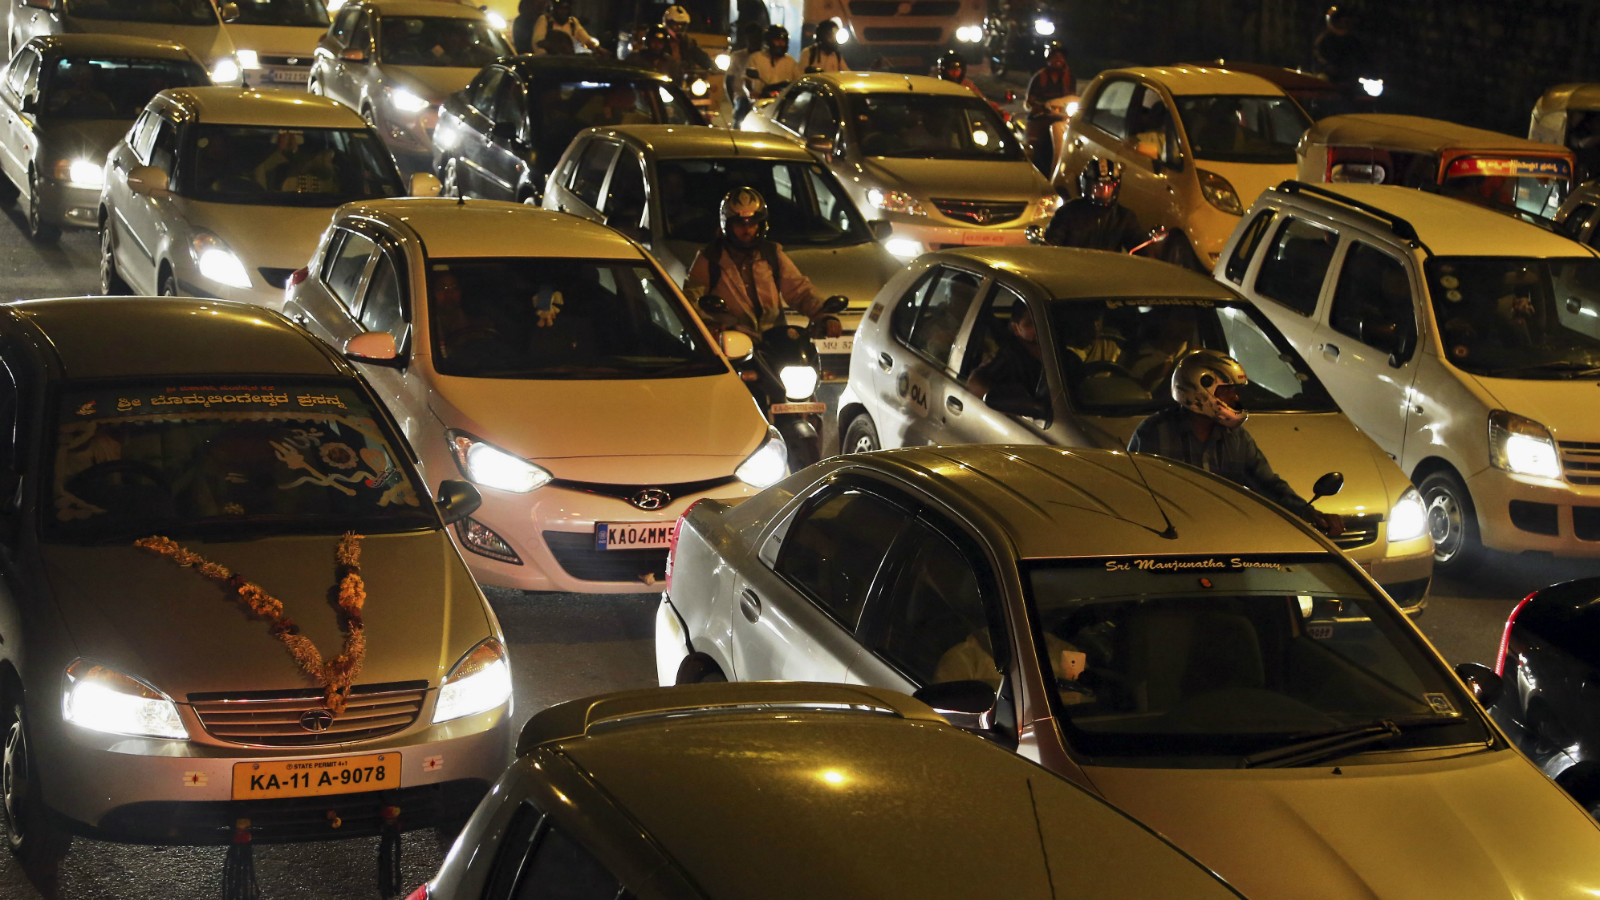 Image result for Indian taxi service will run in London, more than 25 thousand drivers registered